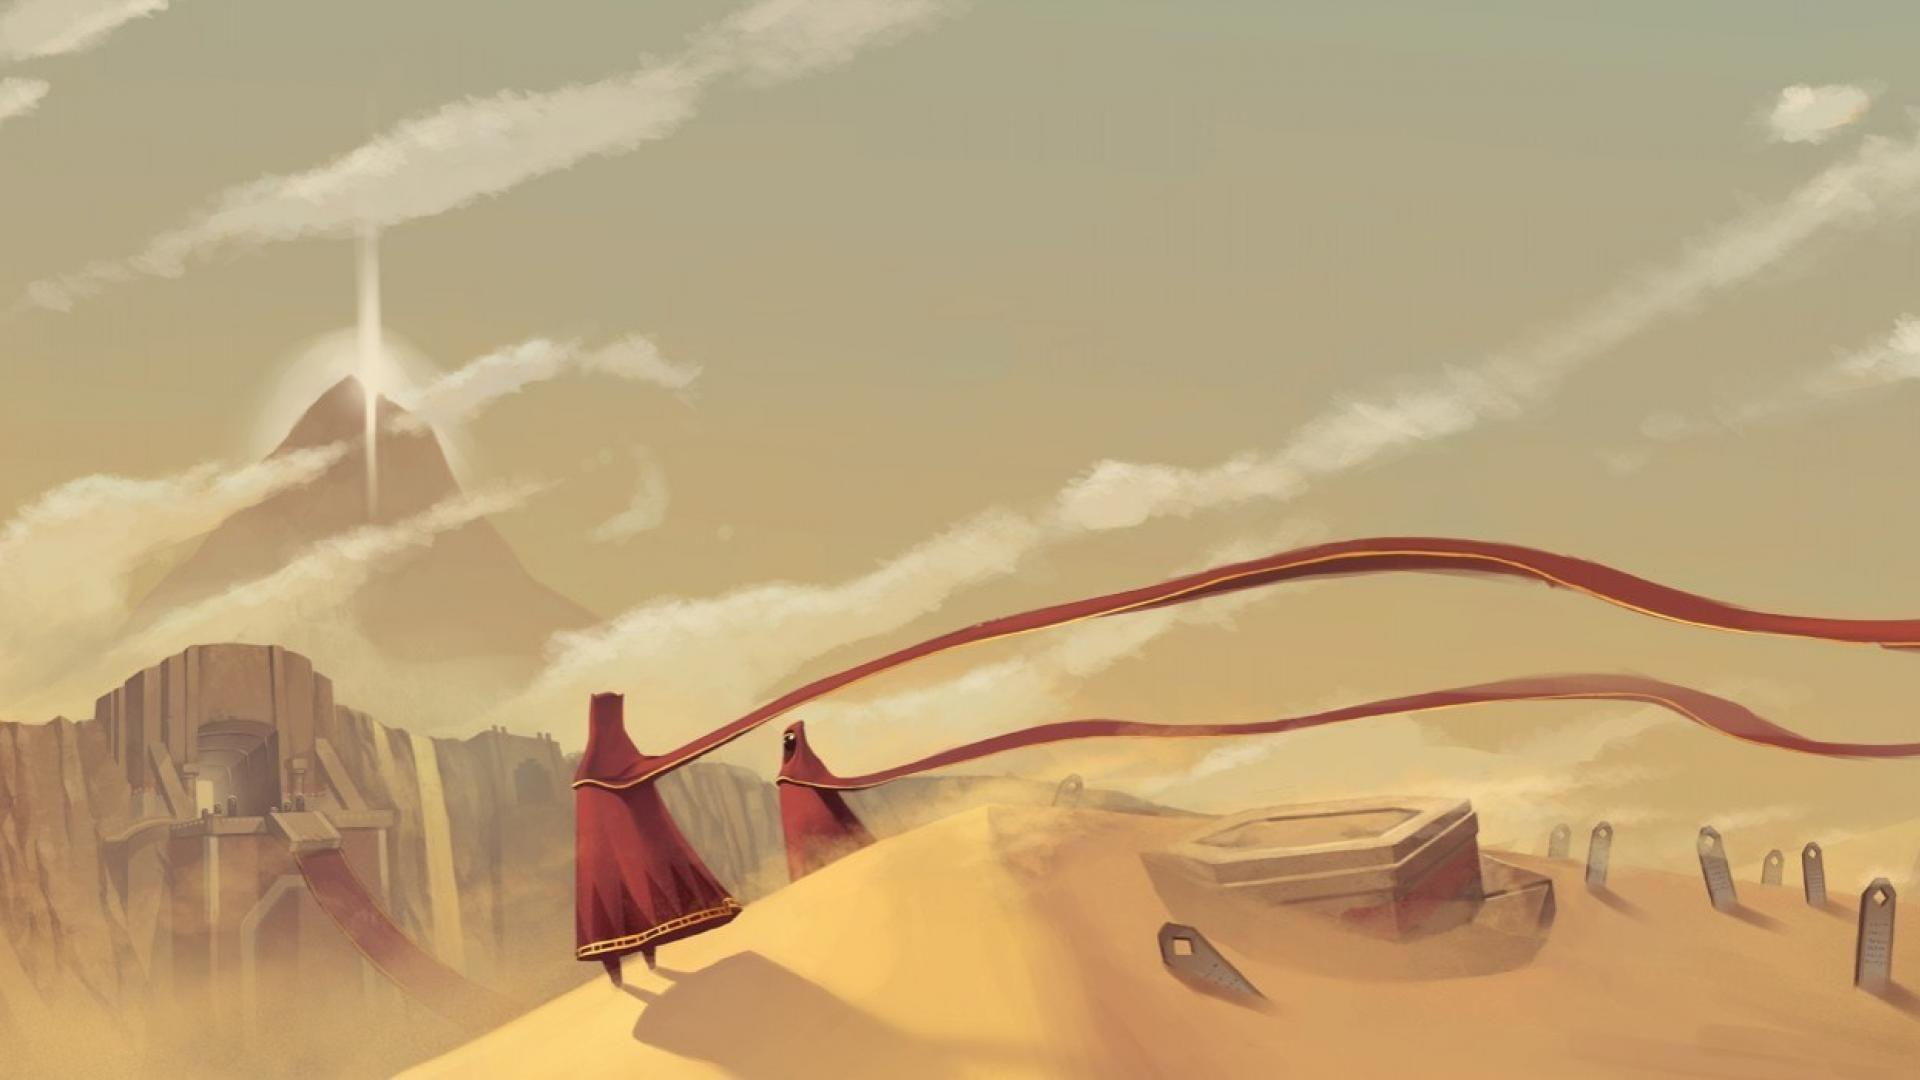 Video games desert sony journey playstation 3 wallpapers